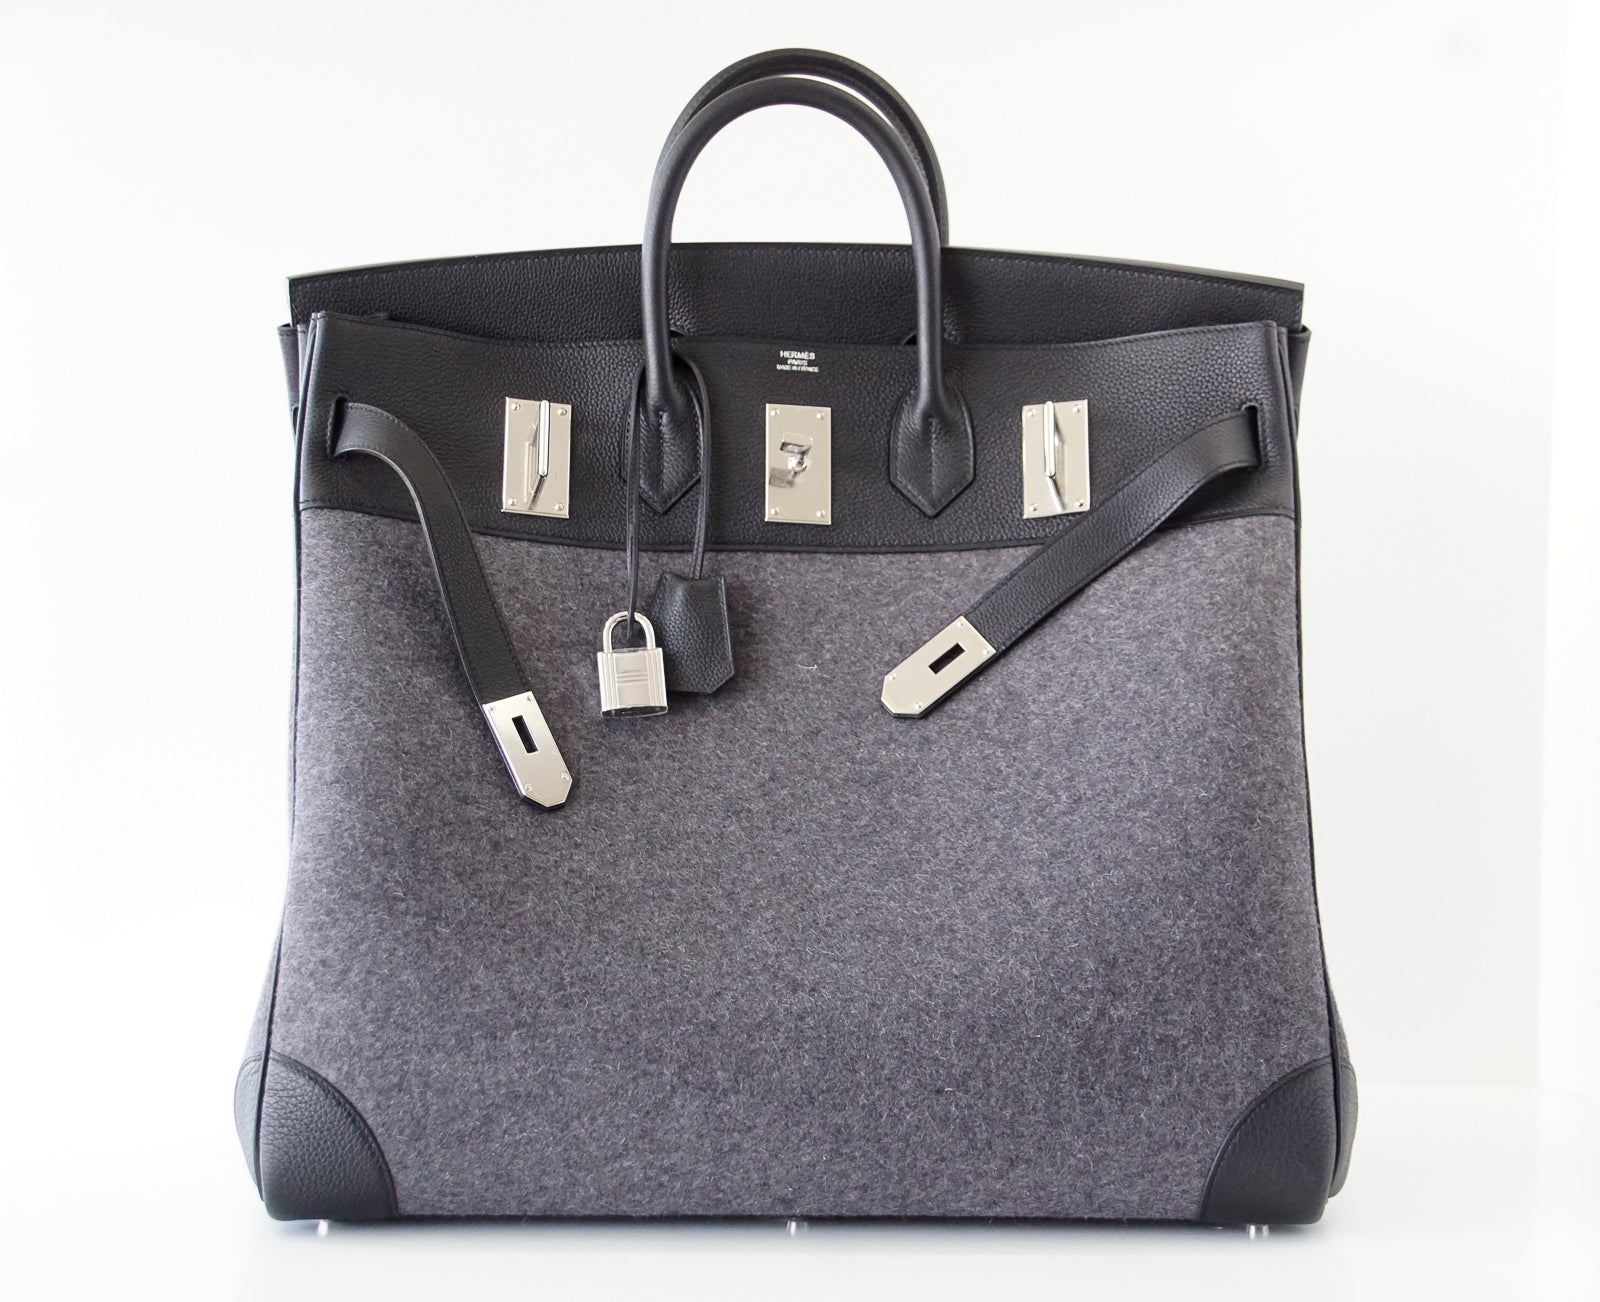 a901e432de14 Hermes Birkin Rare 50 Bag Hac Gris Moyen Grey Todoo Feutre Black Togo  Palladium For Sale at 1stdibs